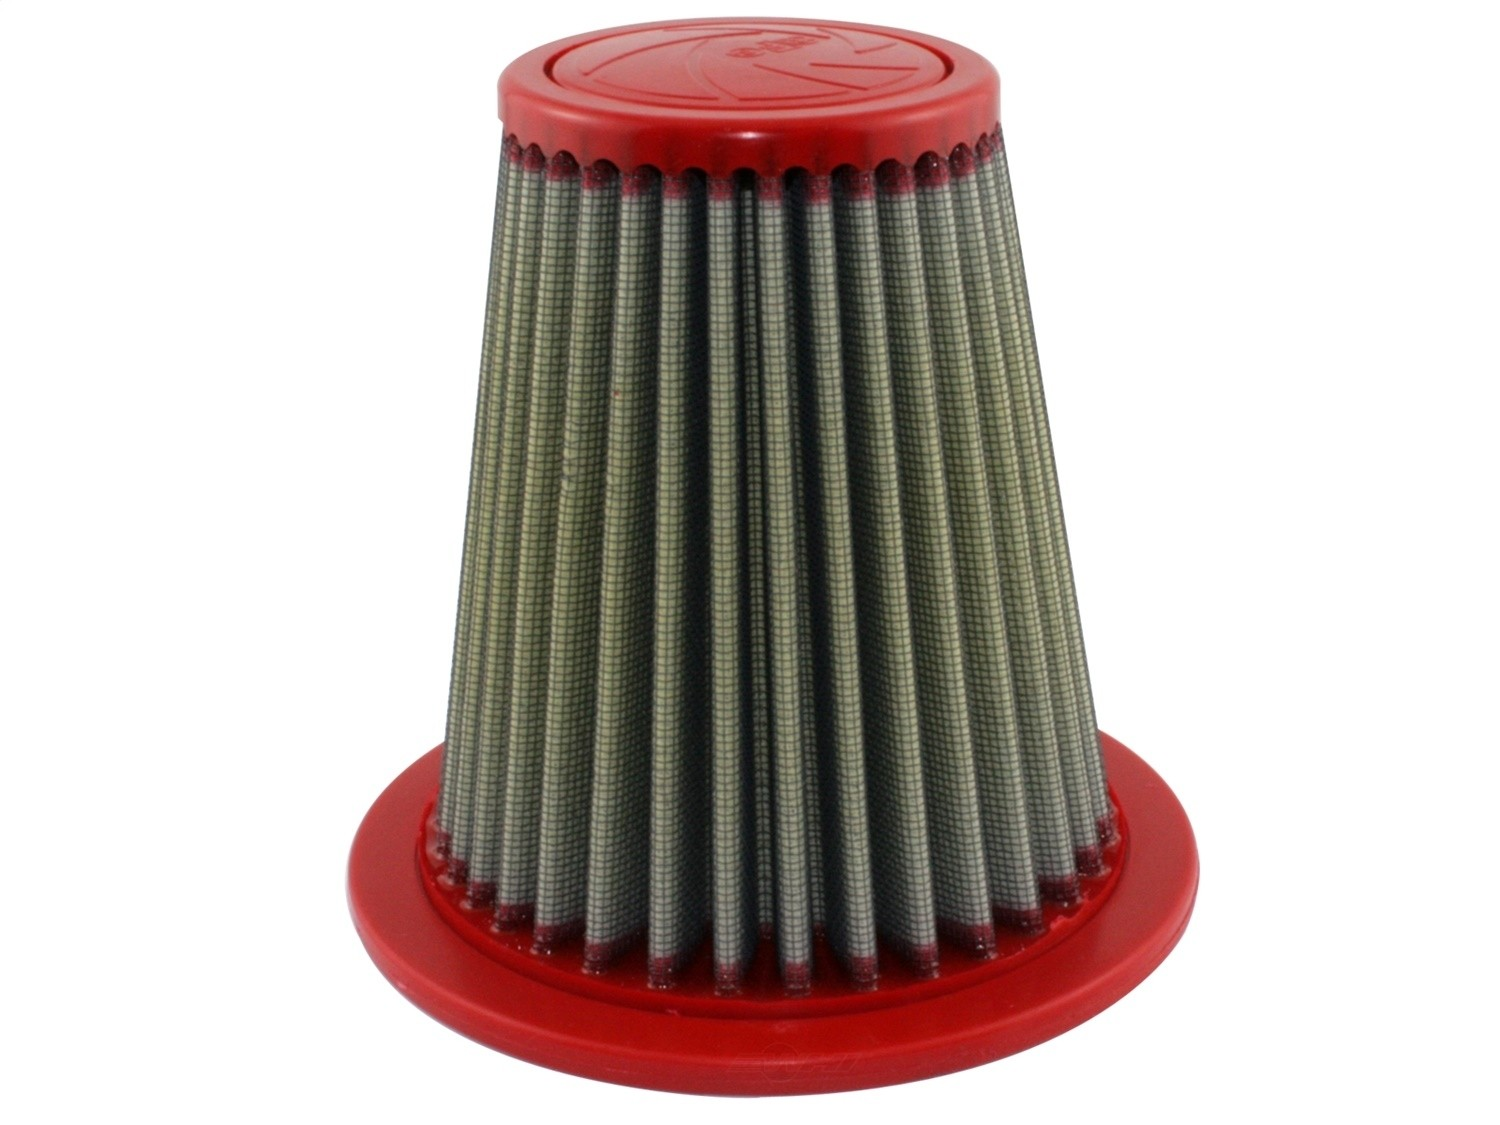 AFE FILTERS - MagnumFlow OE Replacement Pro 5R Air Filter - A5F 10-10010